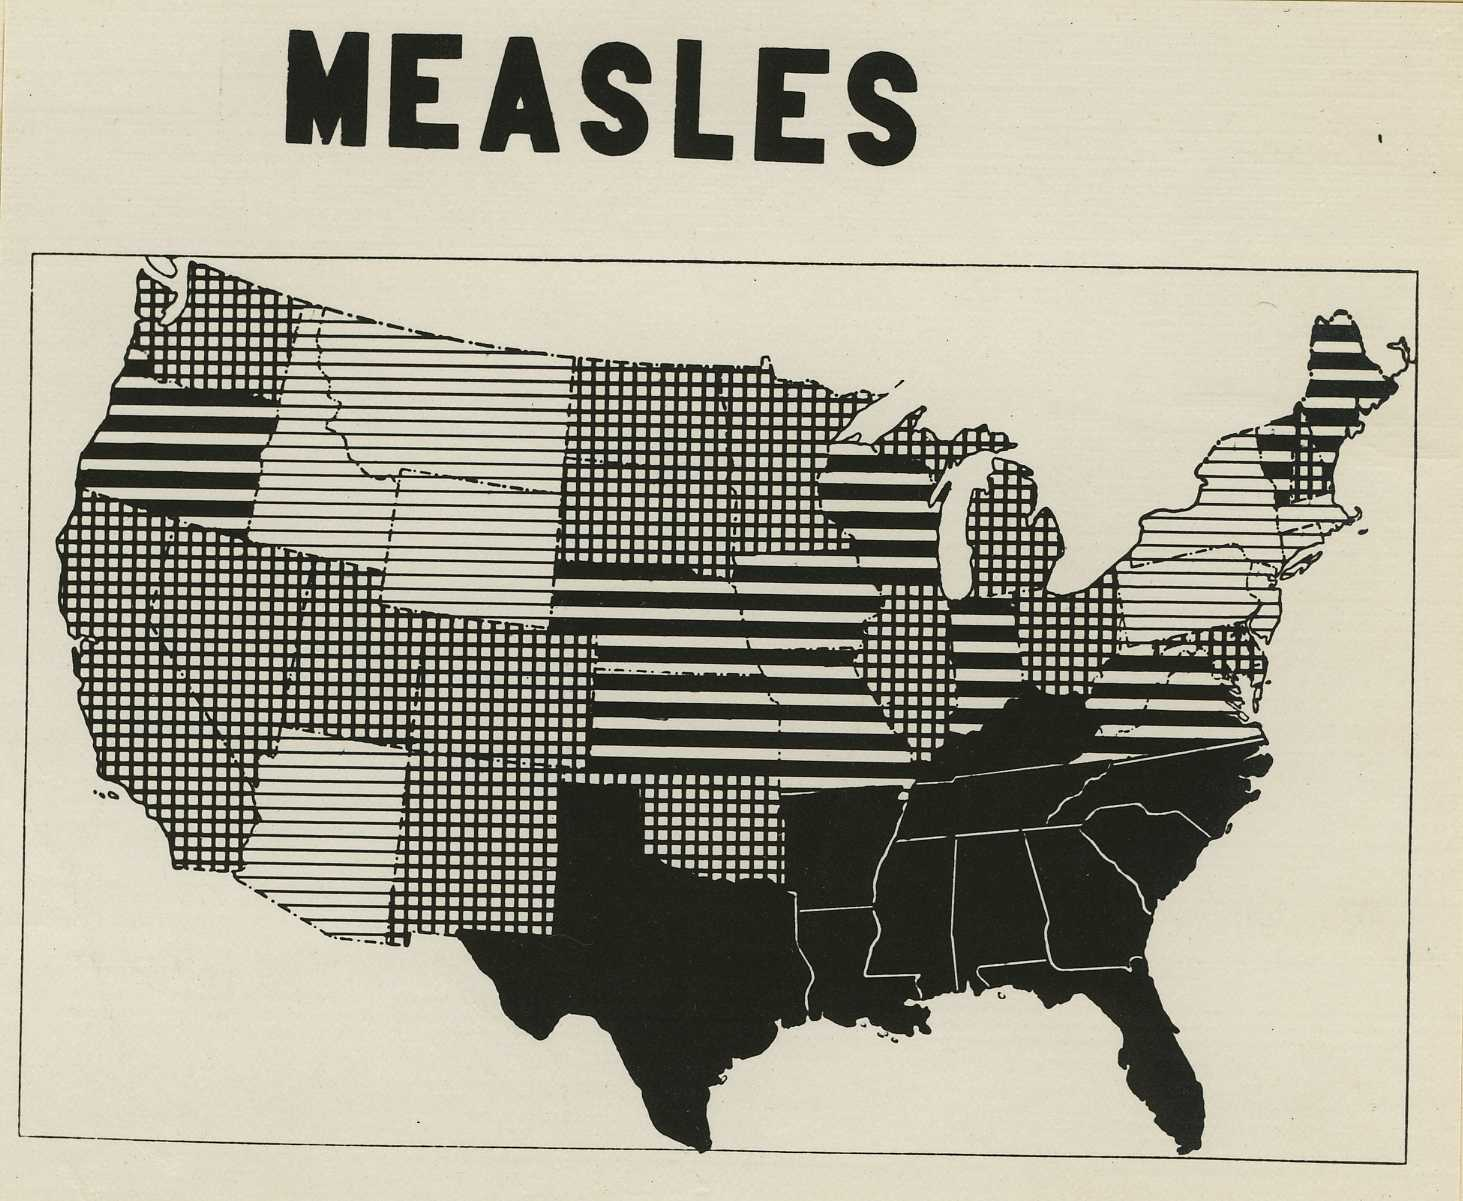 The U.S. could lose its measles elimination status